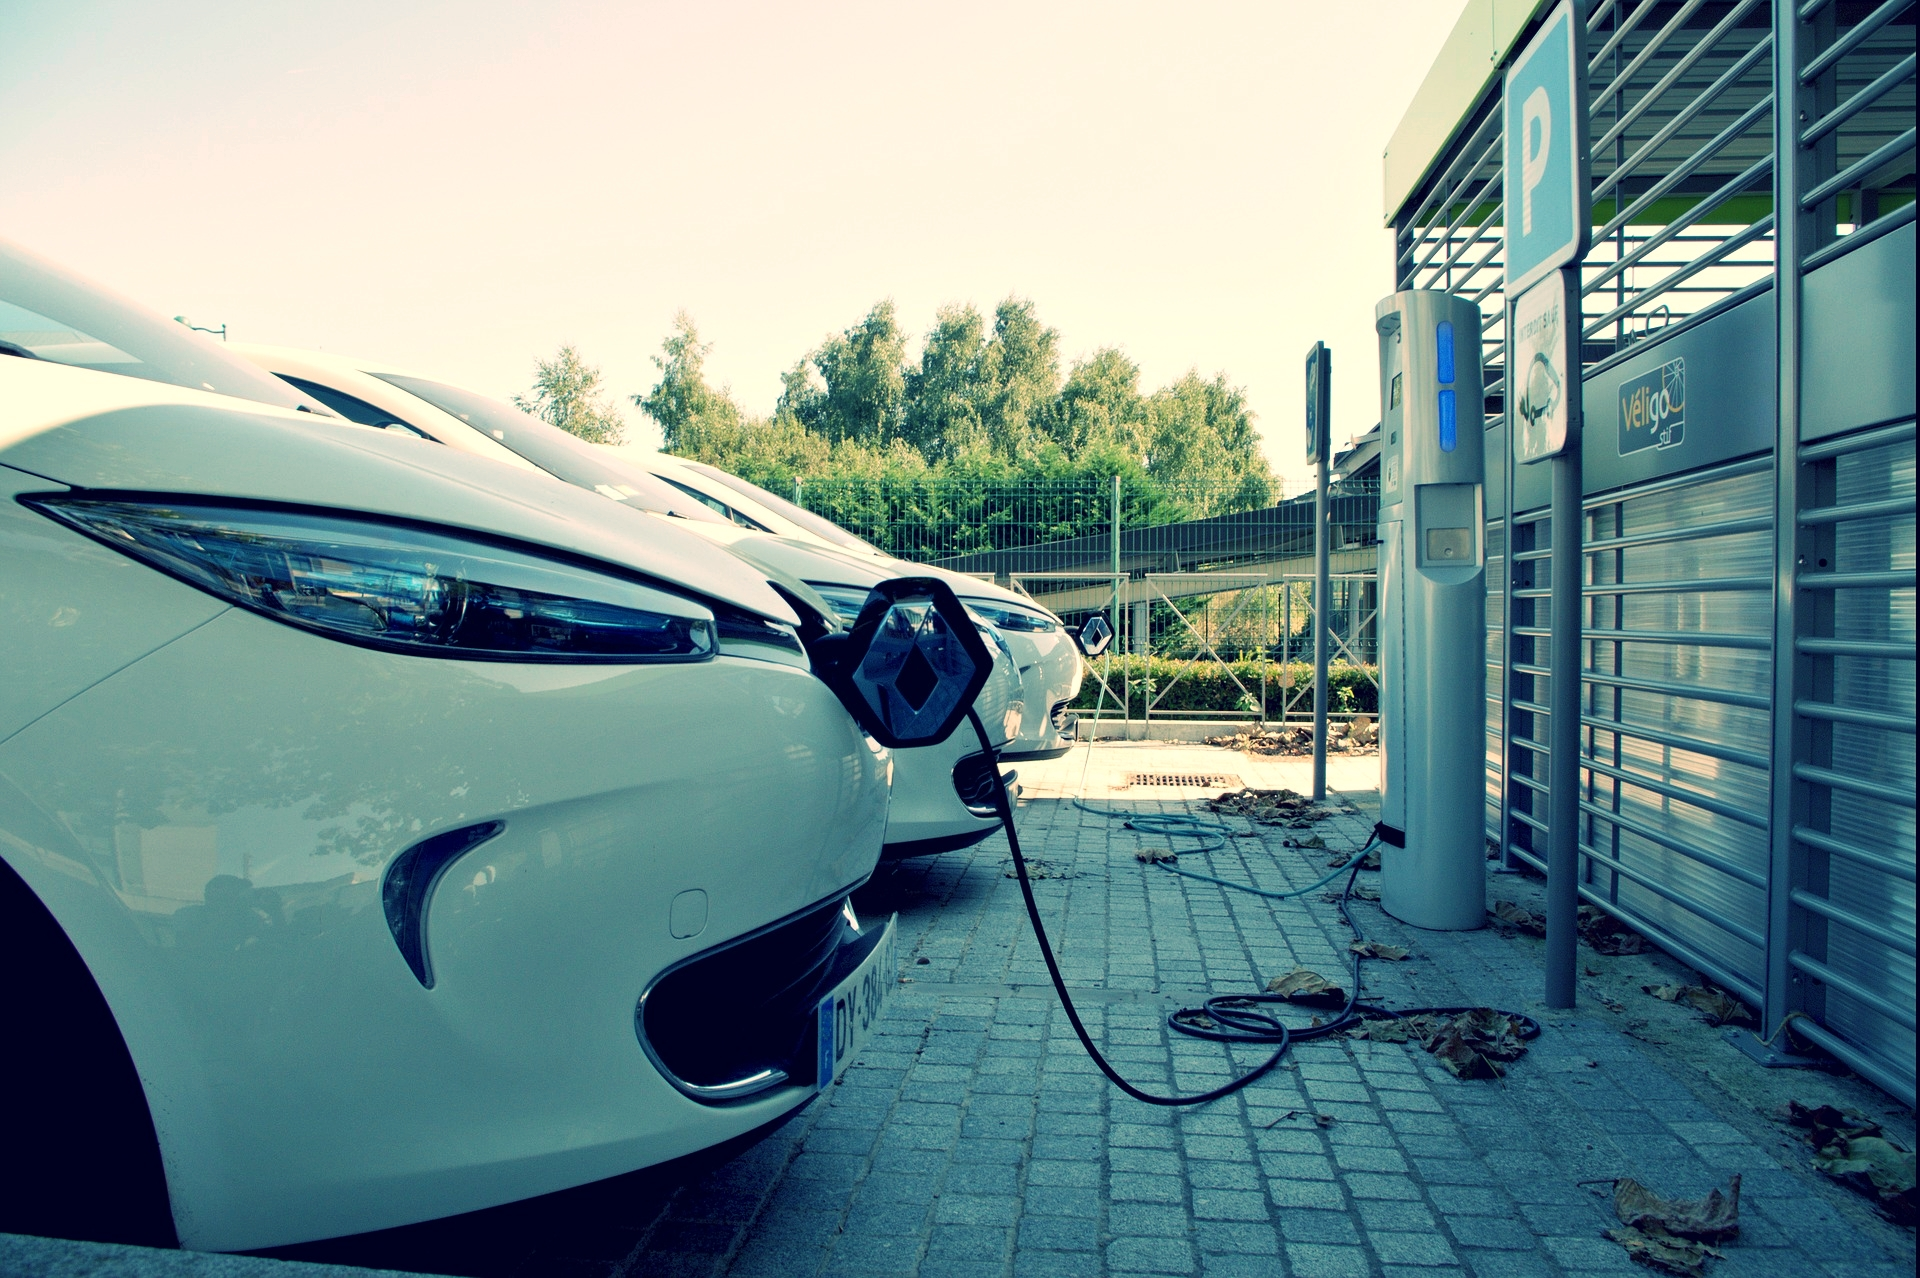 There are over 7000 charging points in the UK -